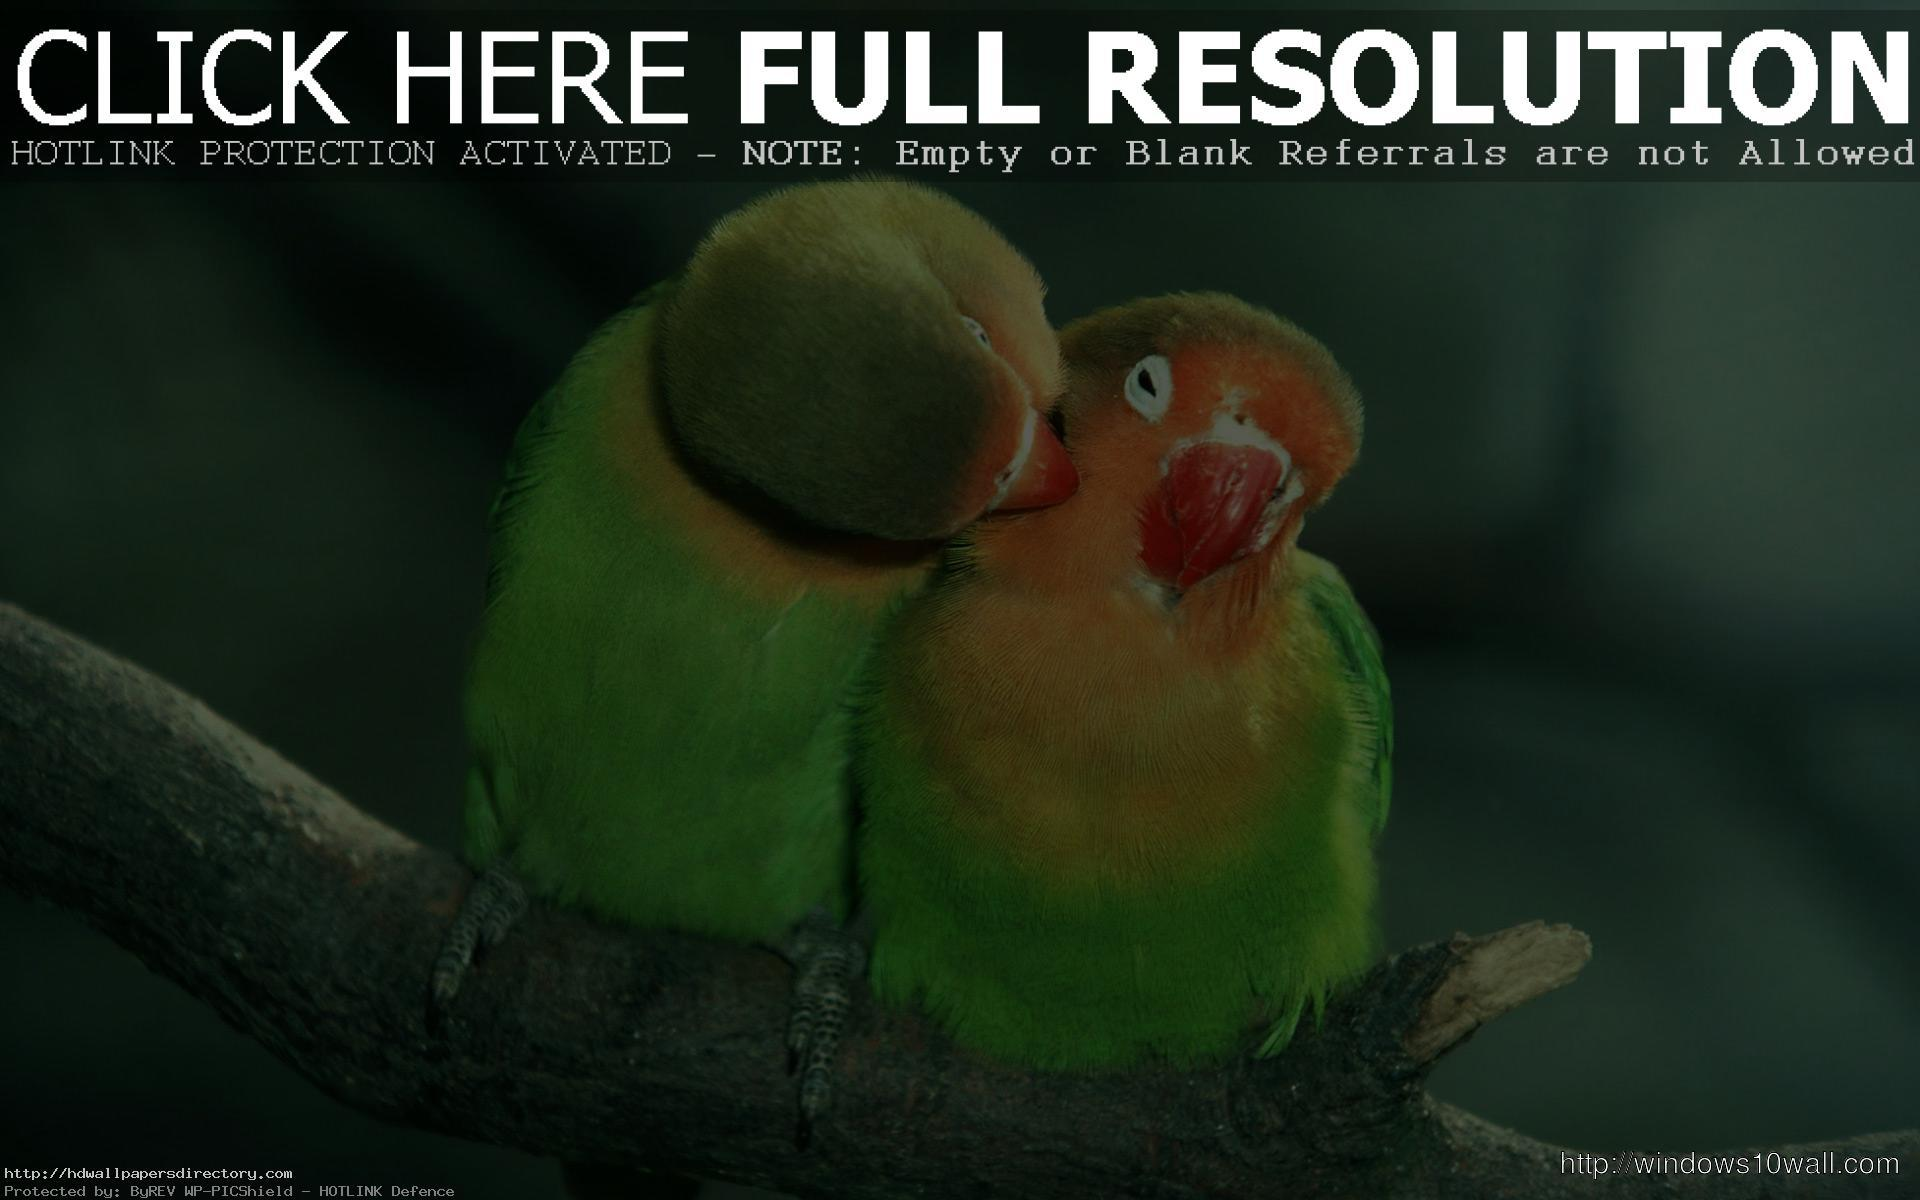 HD Wallpapers of love couples free download